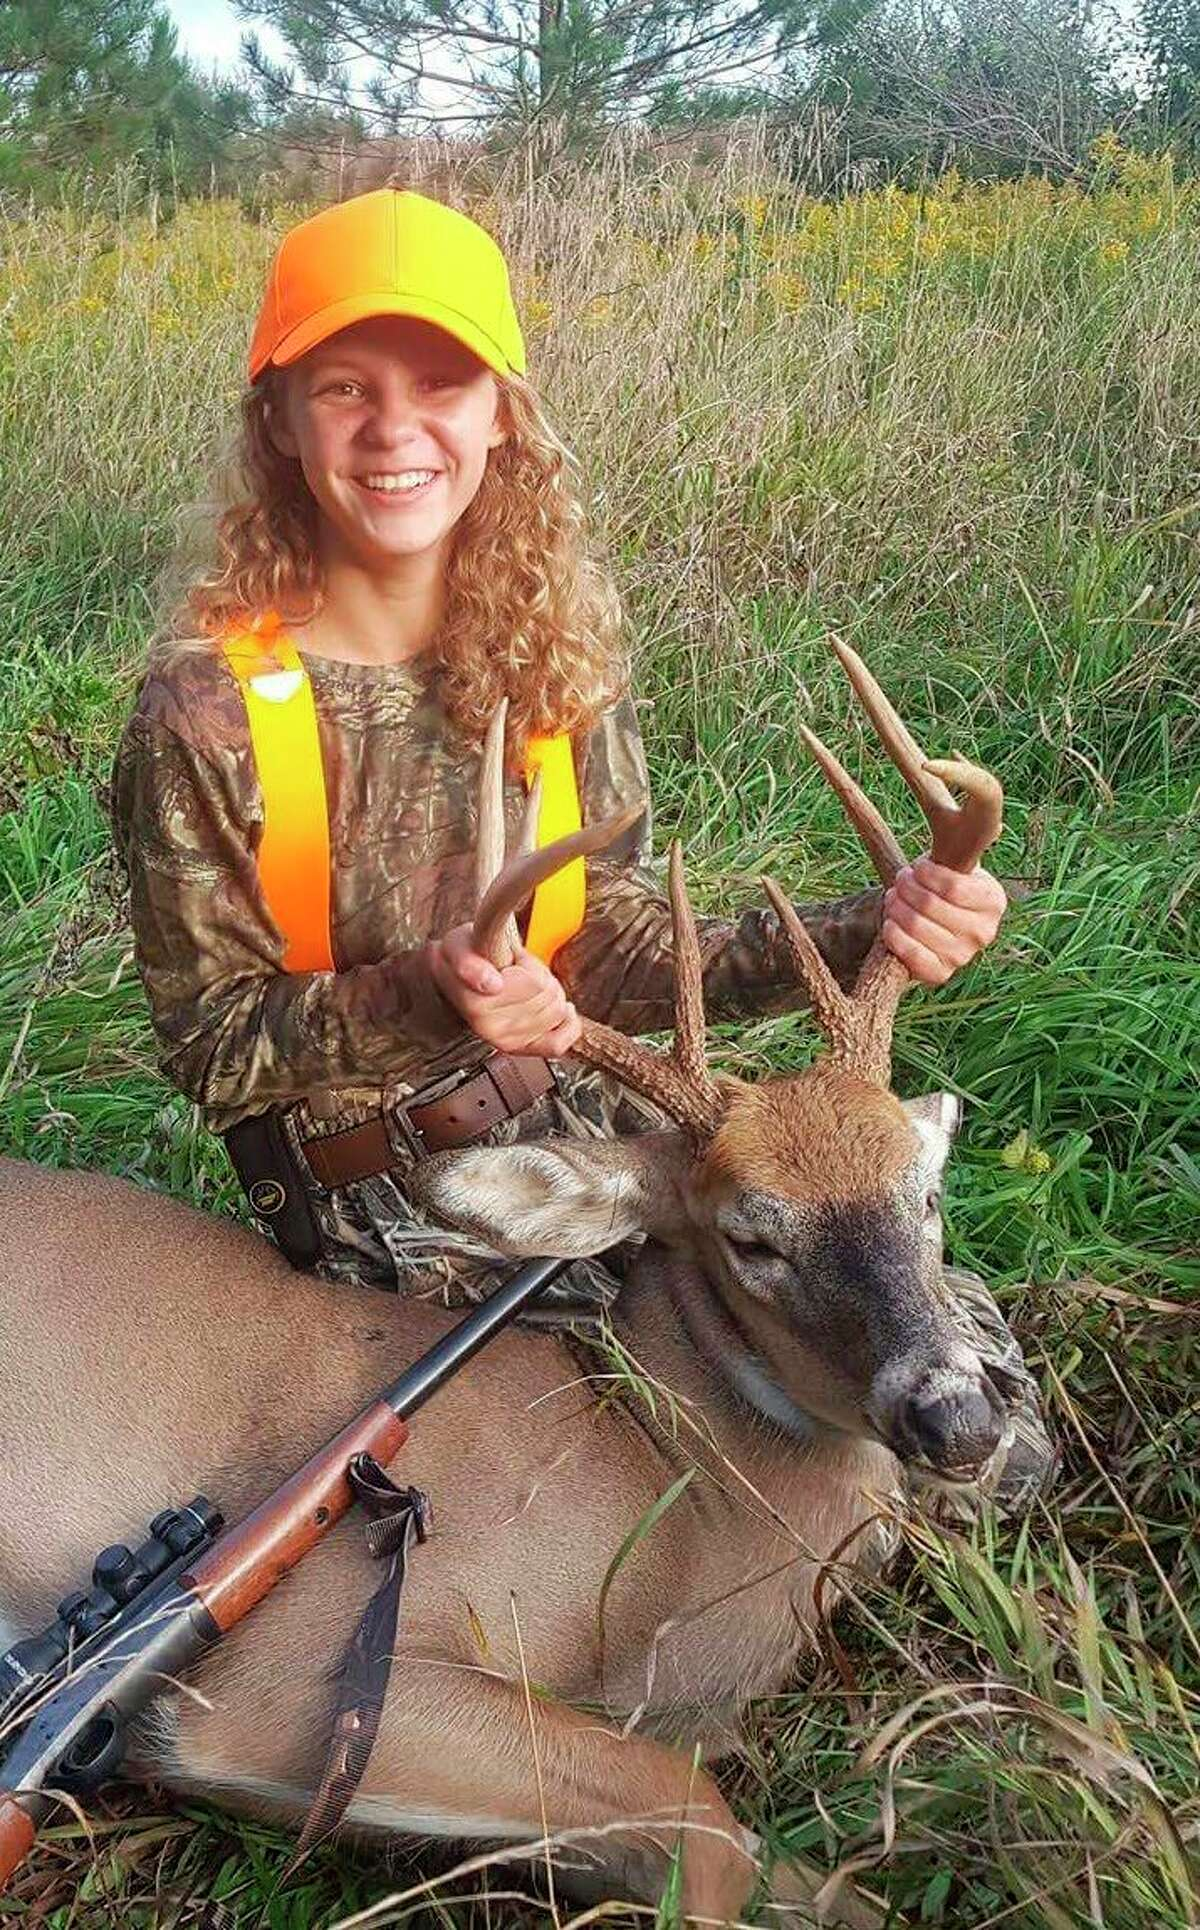 McKenna Lounsbury is shown at age 12 with her 2016 Liberty Hunt Thumb 10-point buck she took with one shot using a 2X-scoped .44 Magnum H&R single-shot rifle, which has remained her favorite deer gun since age 10. (Photo provided by Jake Lounsbury)